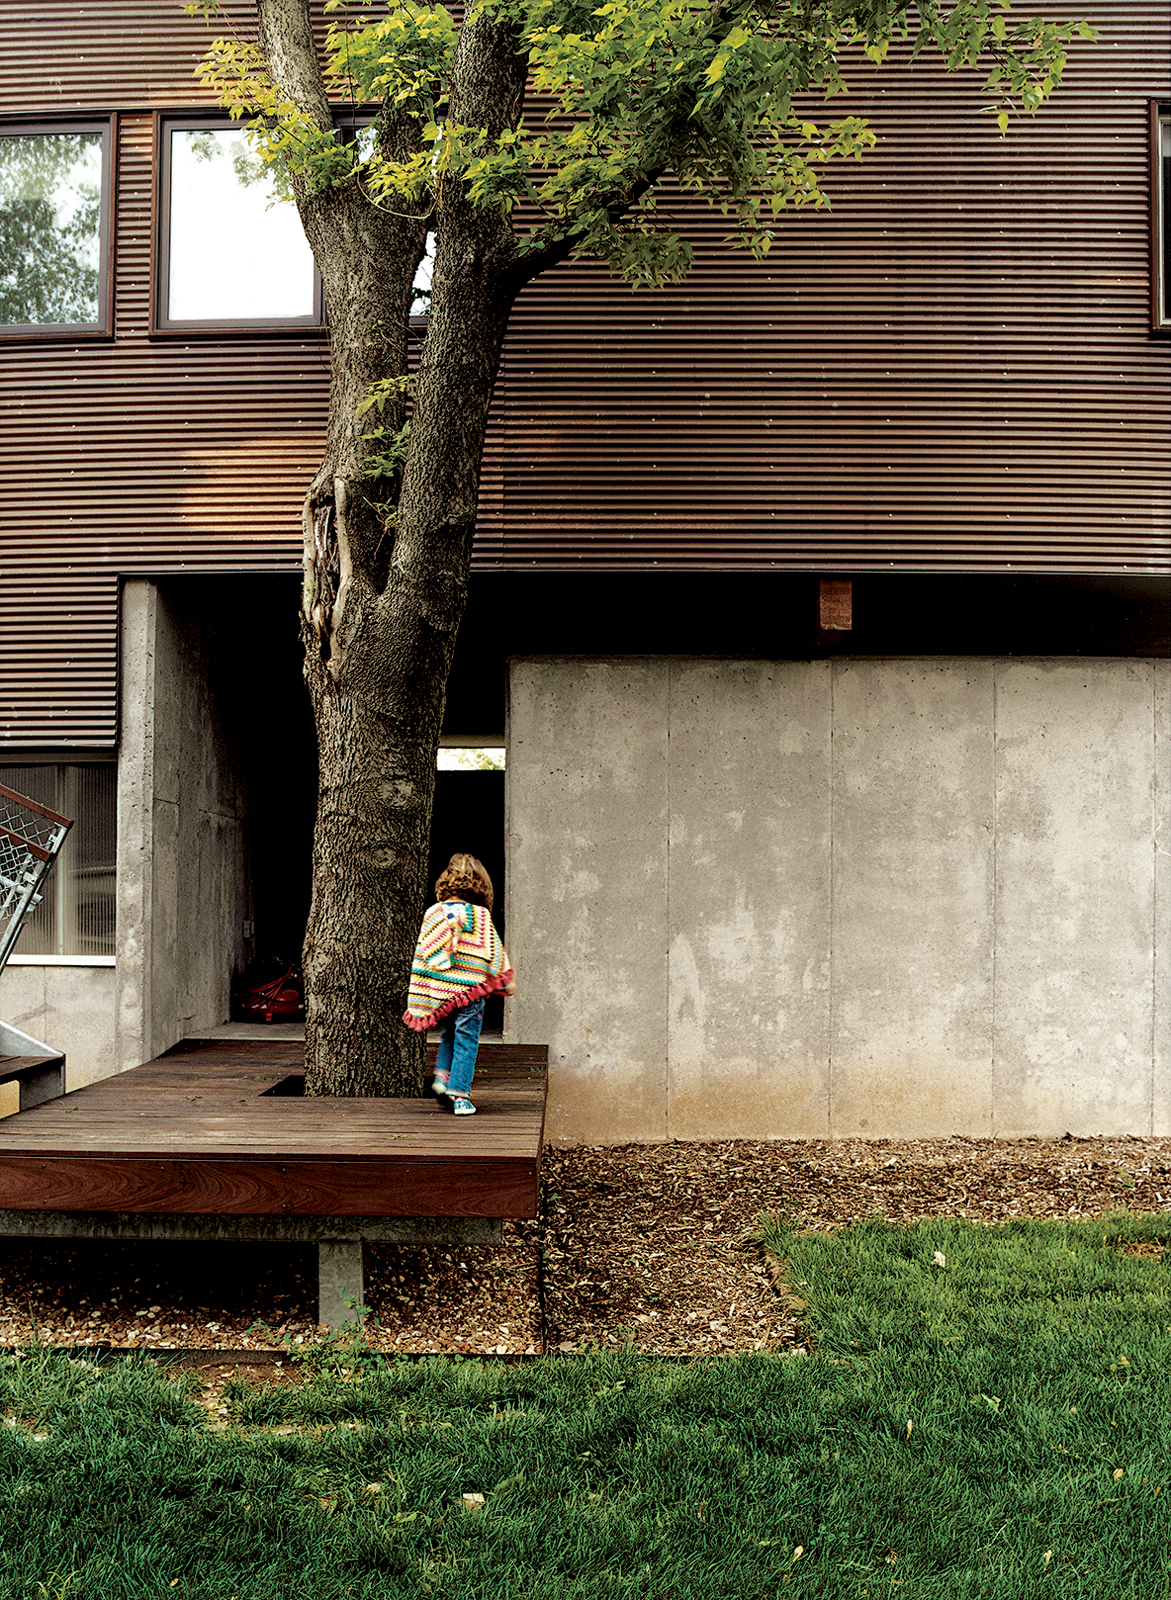 Jamie built the decking, of ipe, to accommodate a tree by the entrance to the garage.